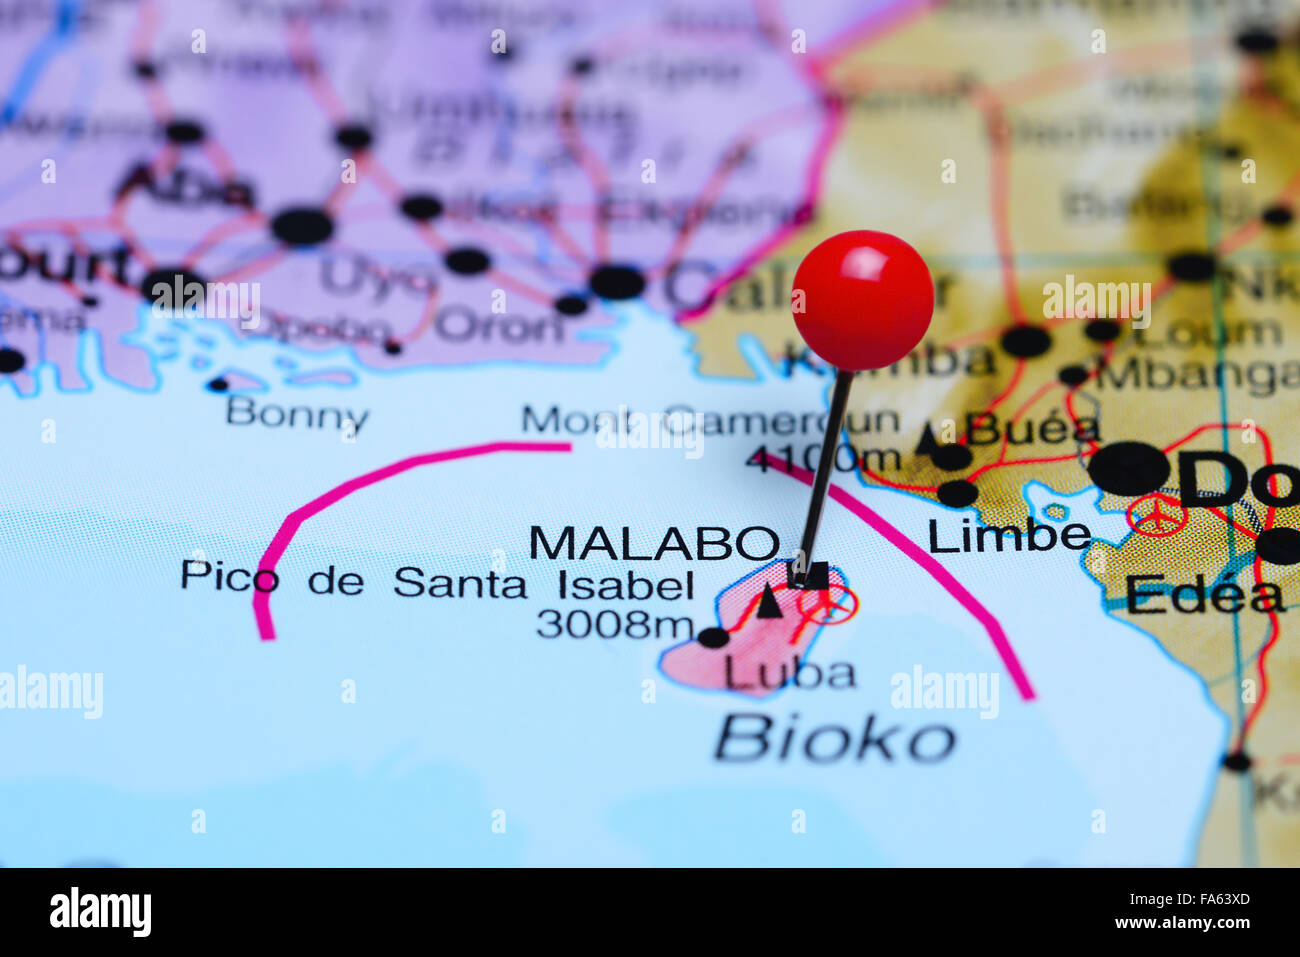 Malabo pinned on a map of Africa Stock Photo Royalty Free Image